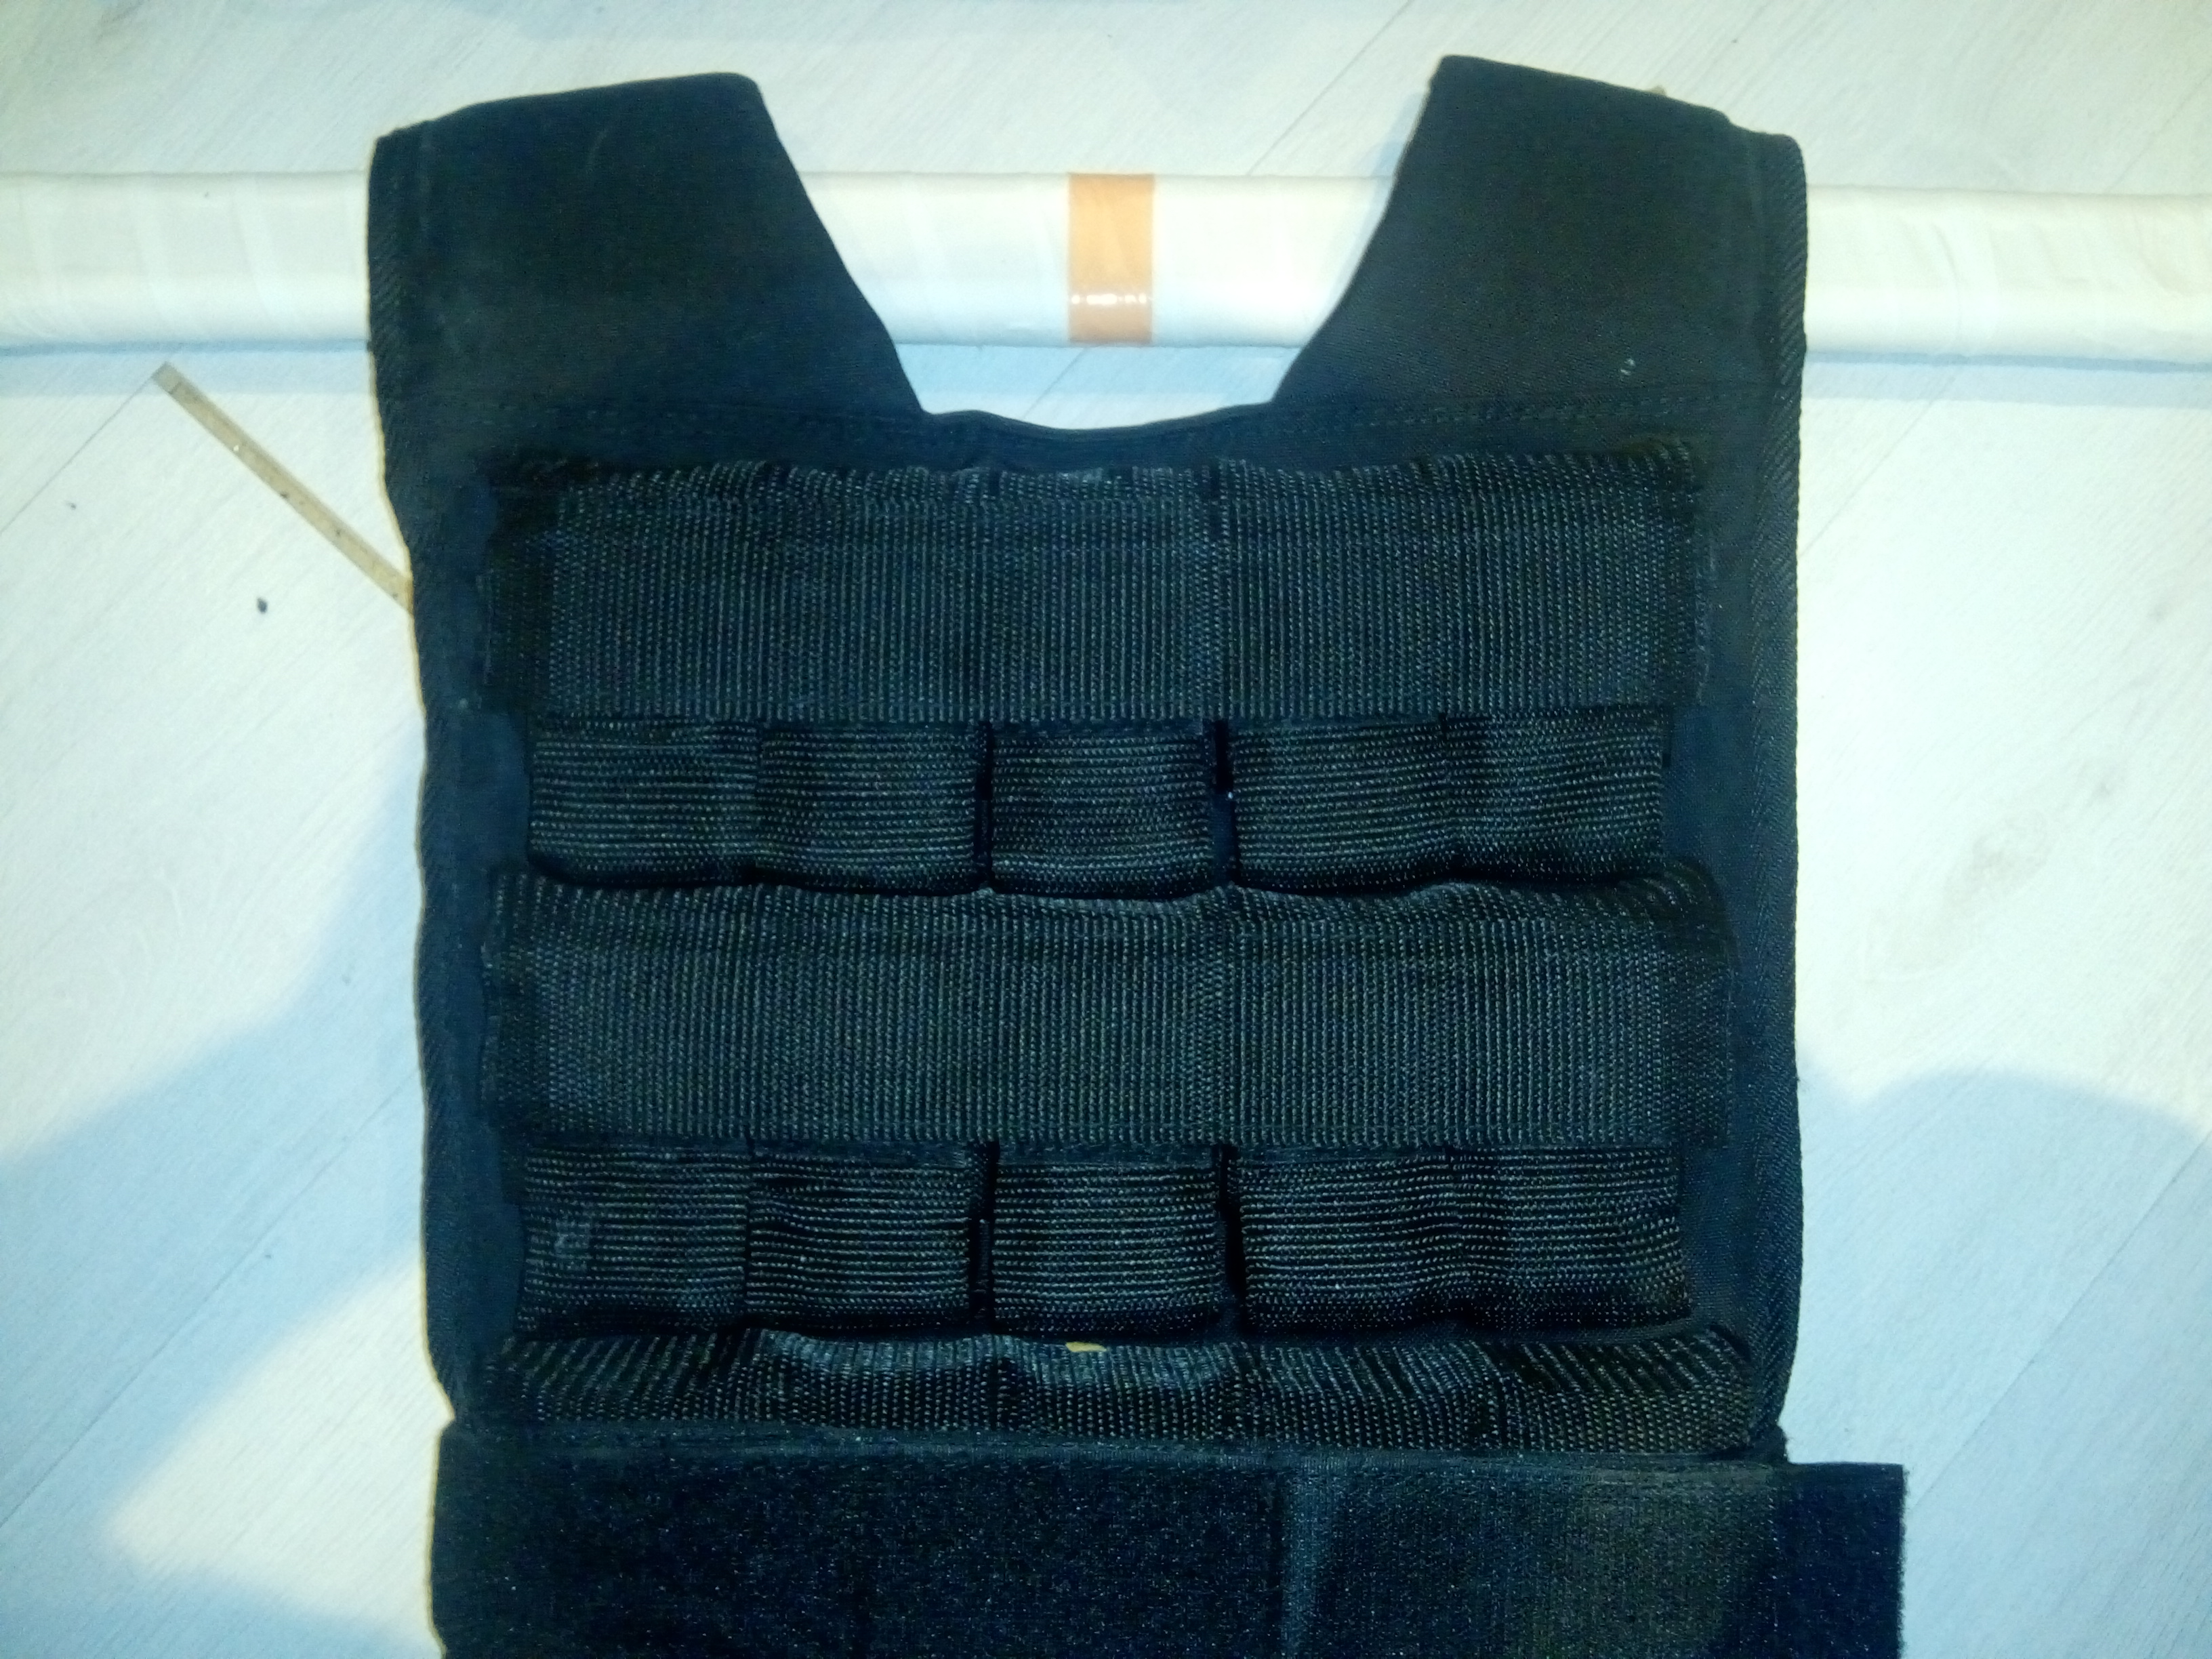 Lifting bar thread through the weighted vest